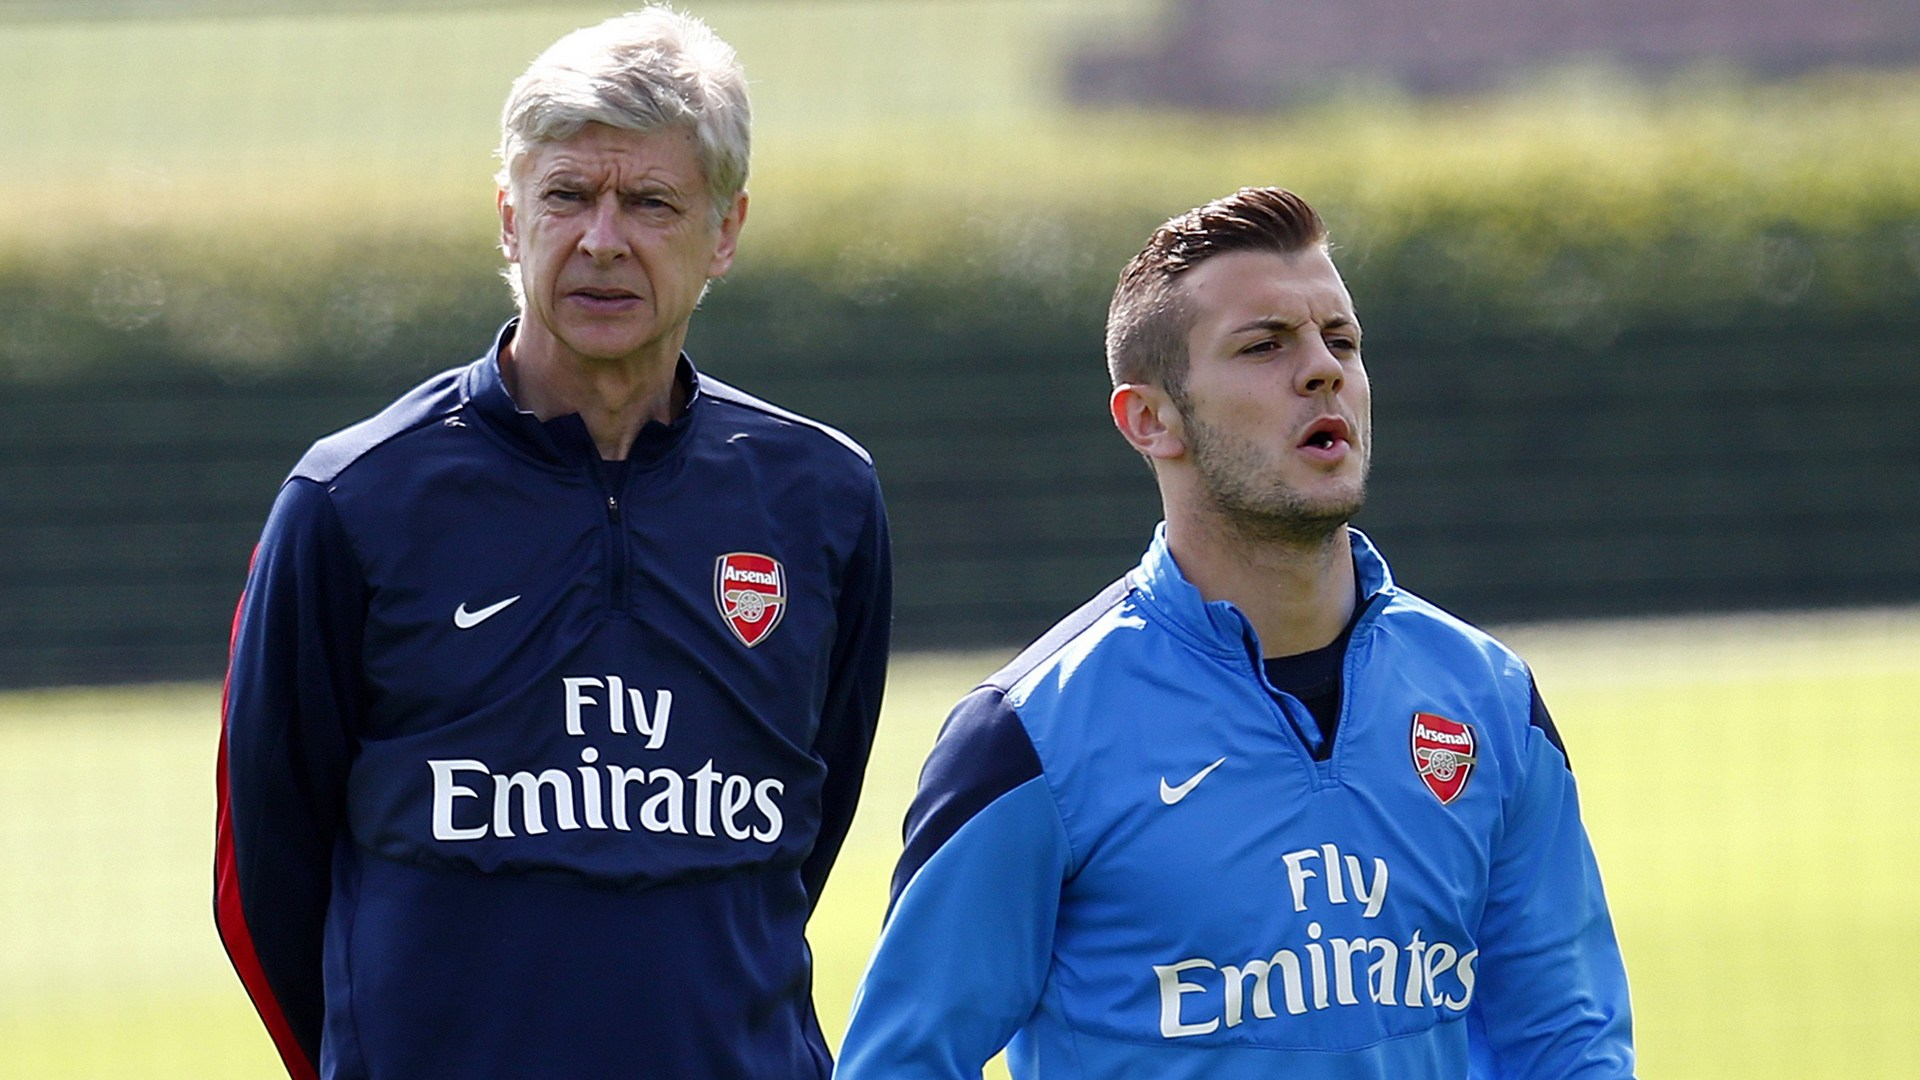 'We disagreed a few times' - Wilshere says Wenger didn't play him in preferred position at Arsenal